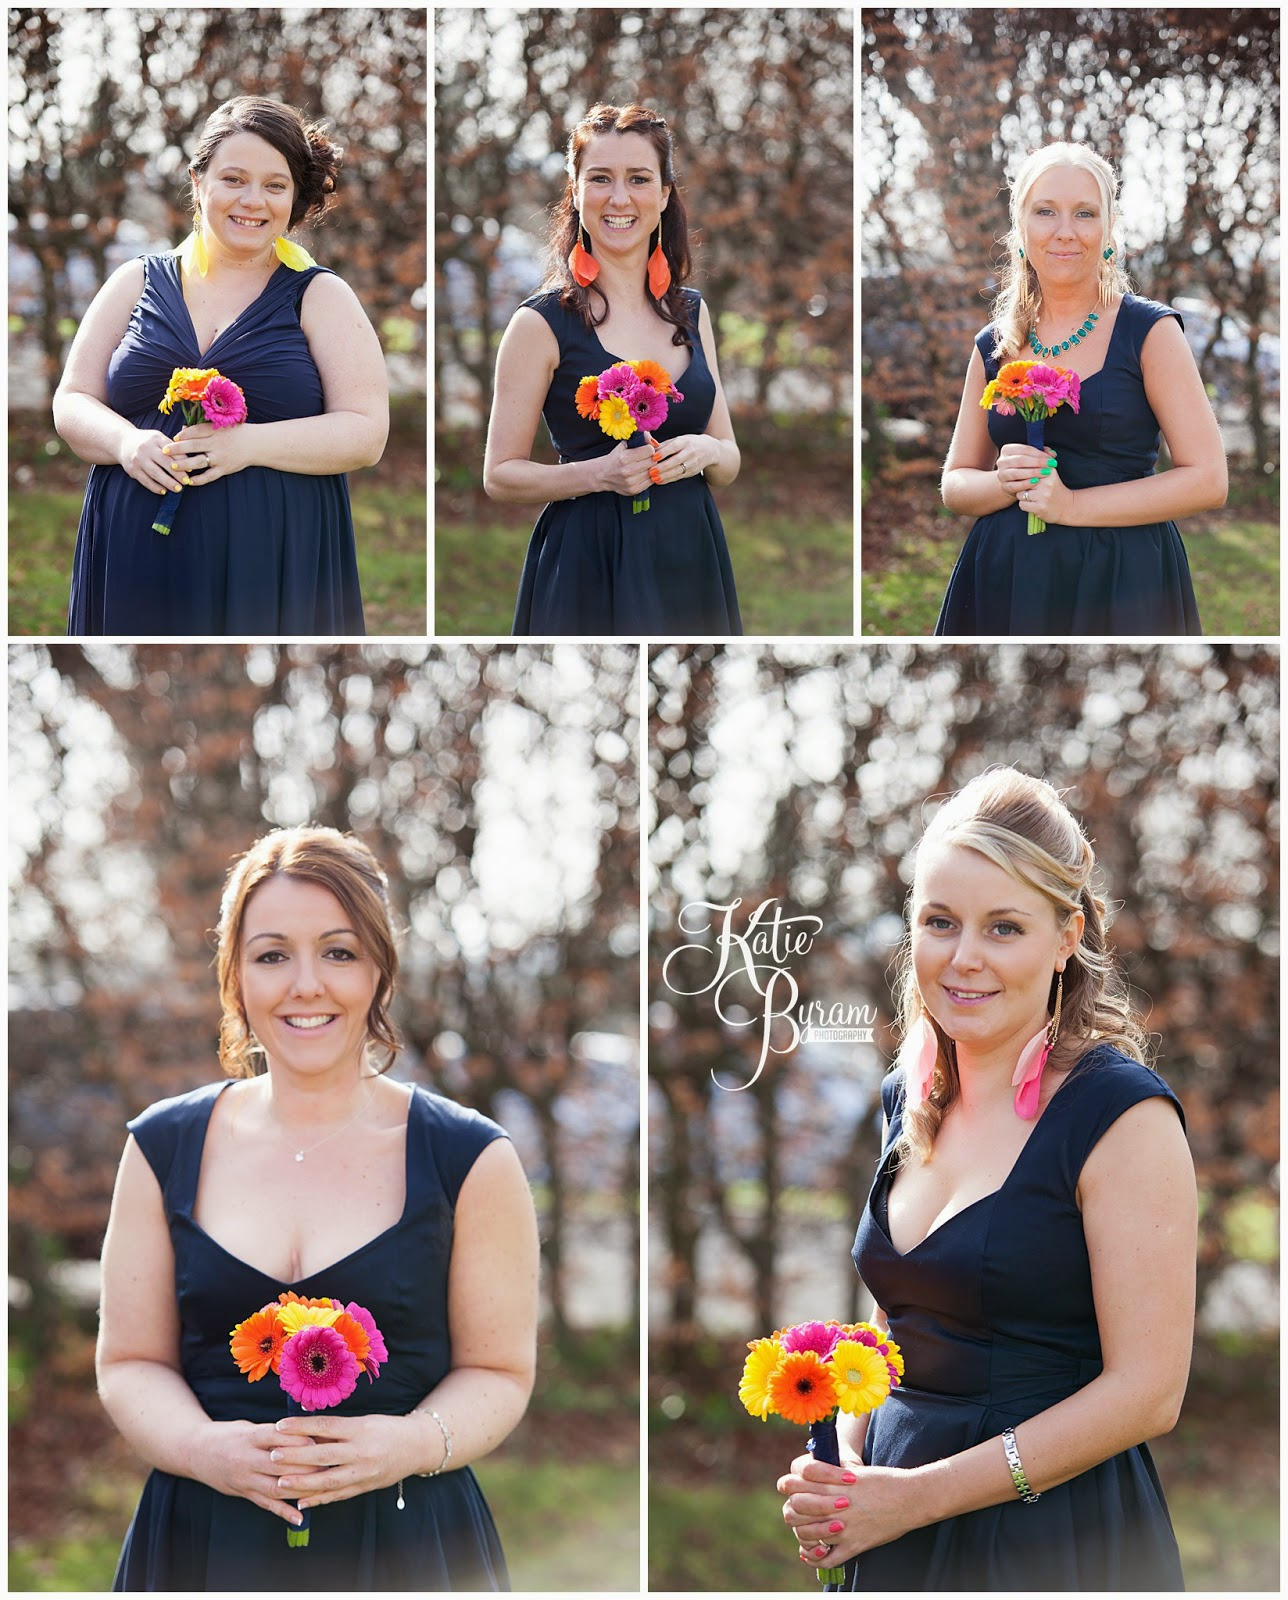 colourful bridesmaids, gebera bridesmaid bouquets, lumley castle wedding, durham wedding, katie byram photography, diane harbridge, carli peirson make up, the big event make up, wedding venues north east, northumberland wedding, quirky wedding photography, travel themed wedding, castle wedding north east, newcastle wedding, chester-le-street